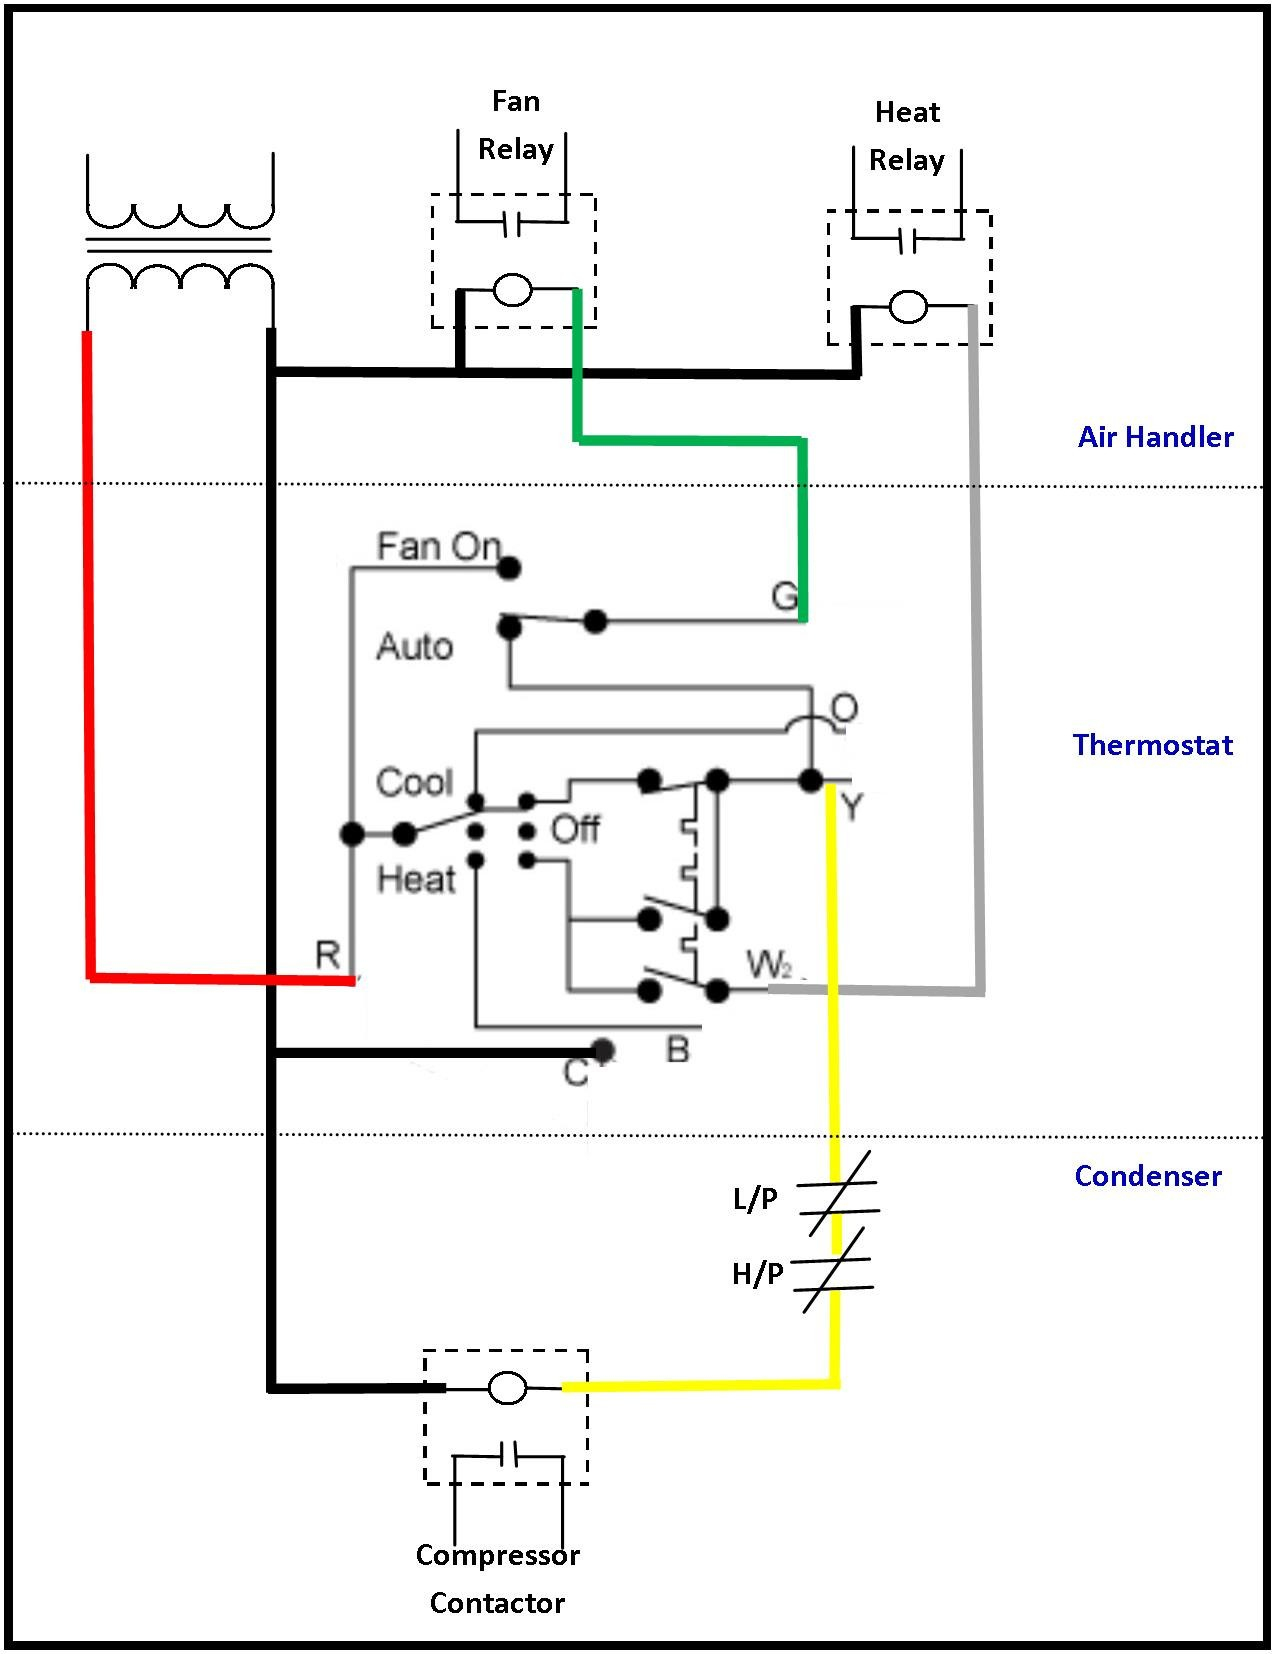 hvac thermostat diagram hvac thermostat wiring diagram download baird hvac thermostat wiring #10